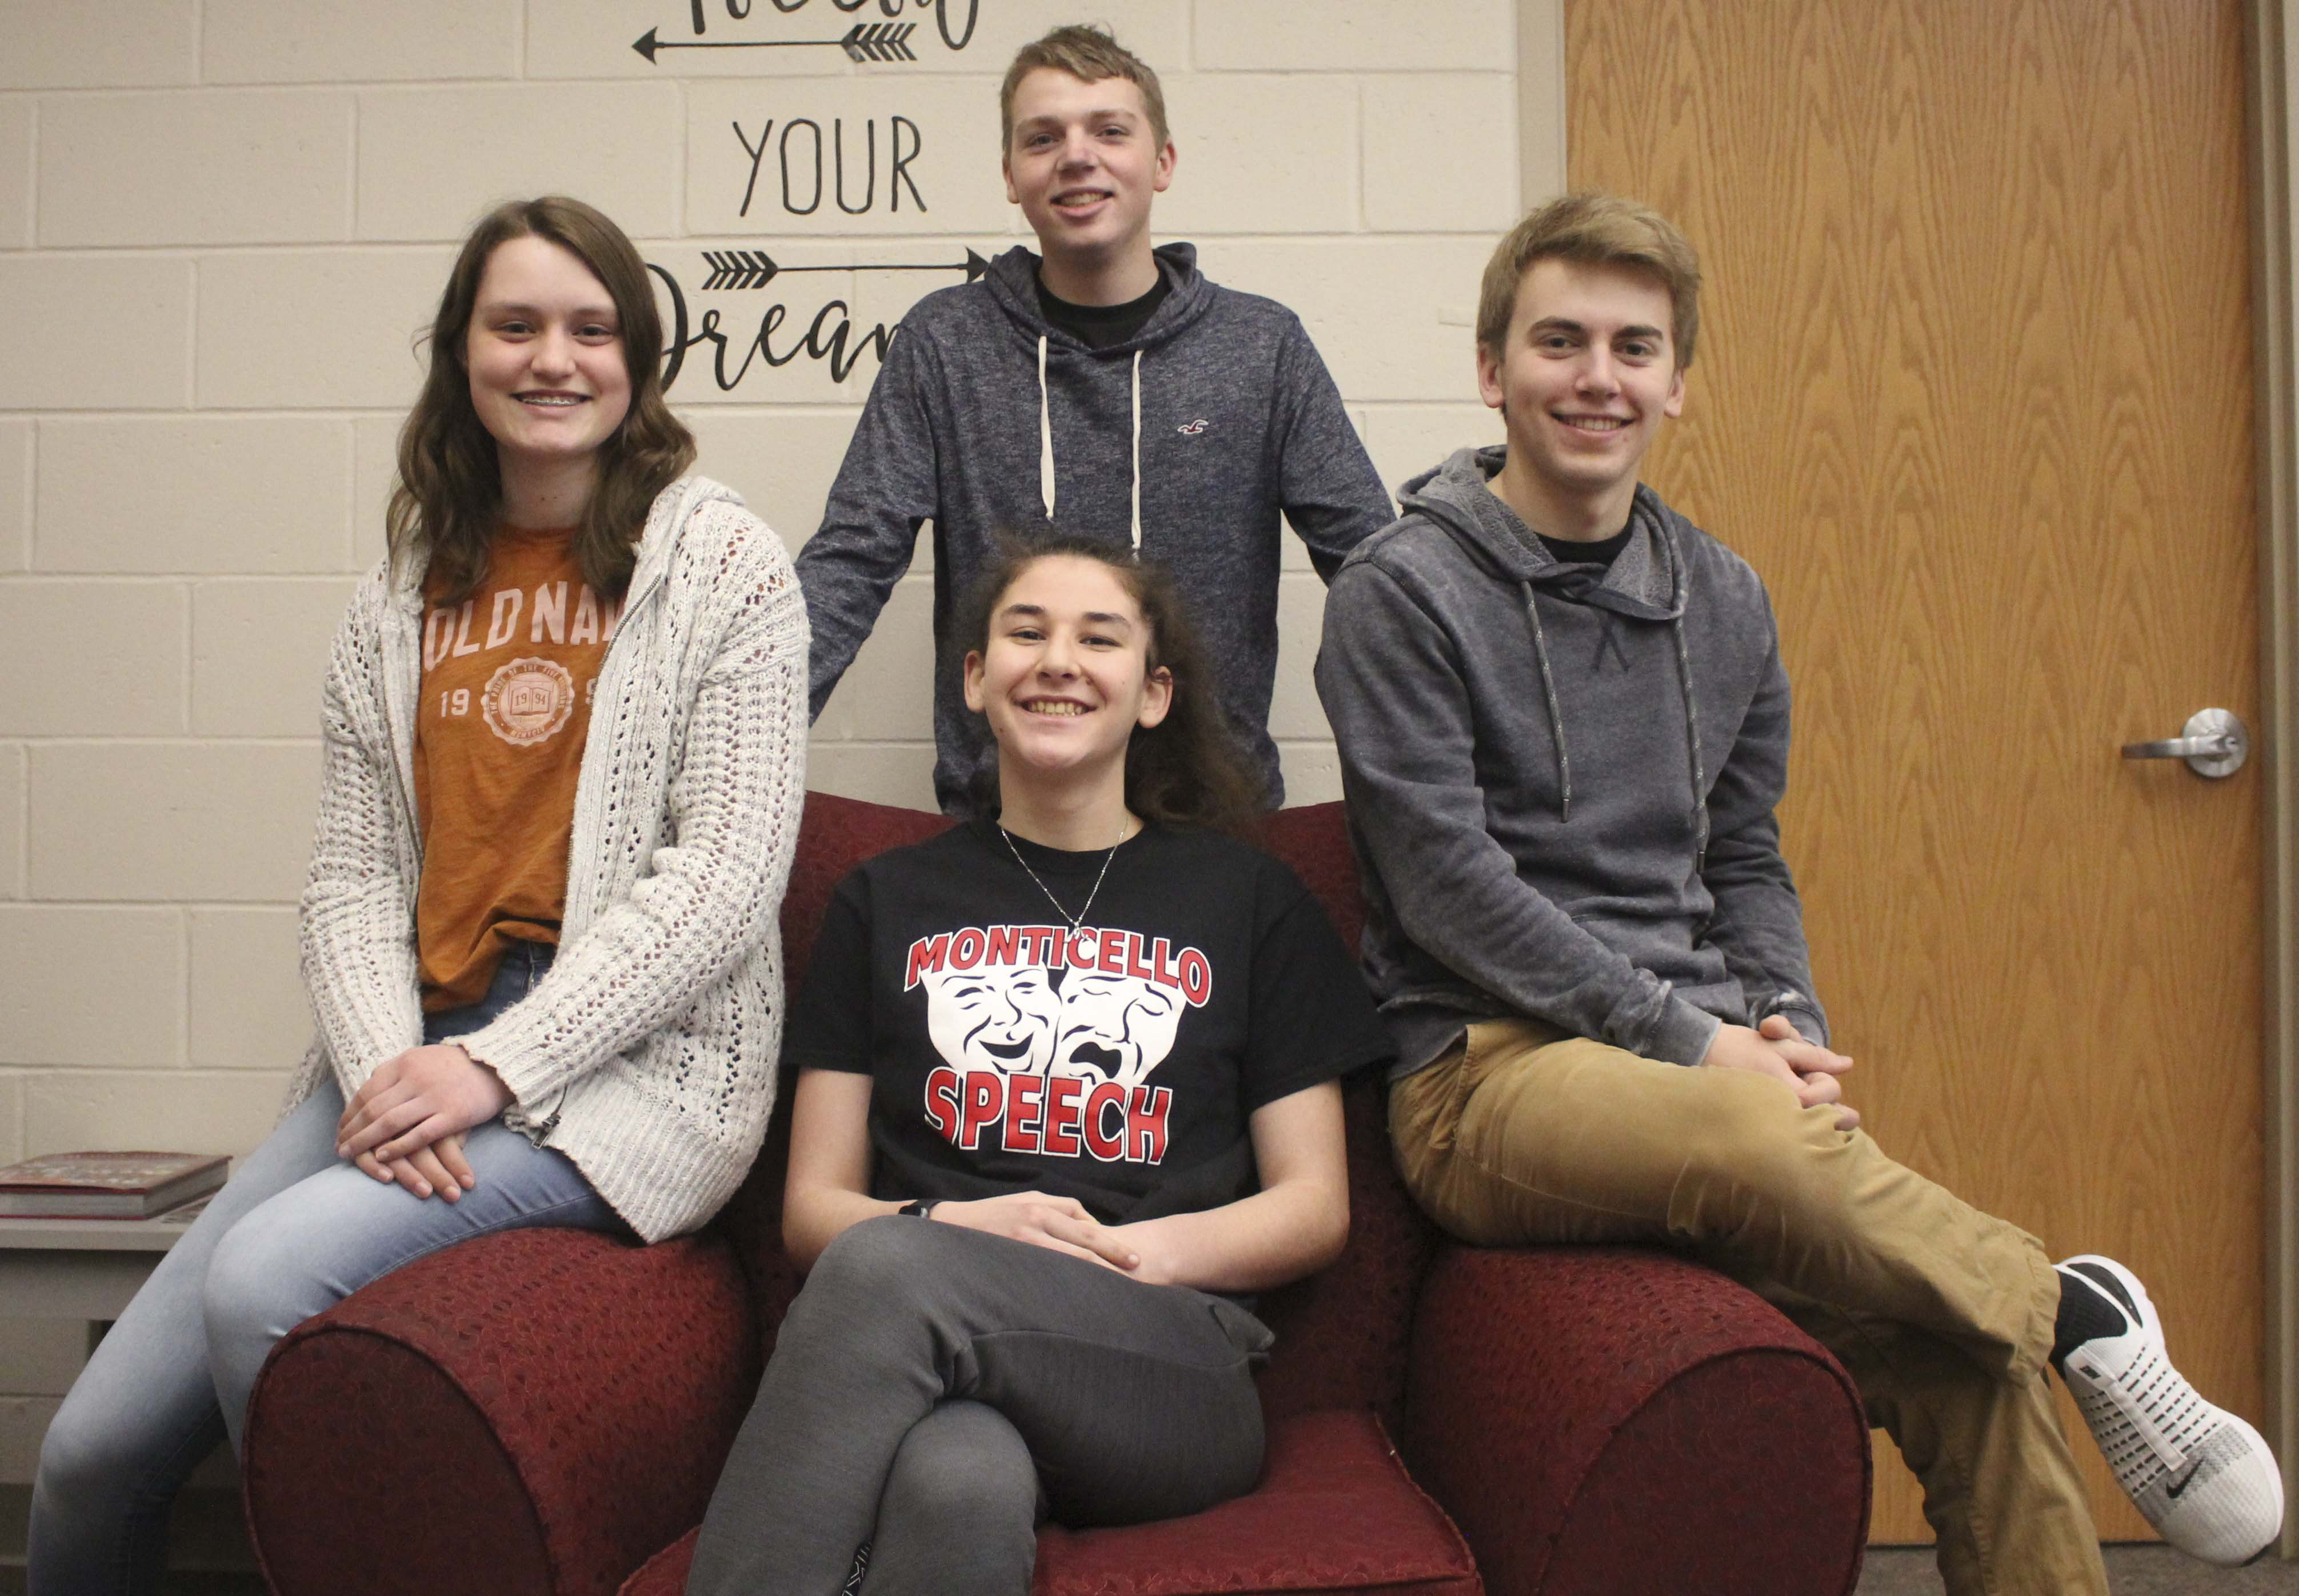 Four Monticello High School students were nominated for All-State Individual Speech. Seated from left are Lauren Koehler, Storytelling; Megan Mahoney, After-Dinner Speaking; and Grant Hospodarsky, Improv. Standing is Levi Temple, Solo Musical Theater. Their entries were submitted virtually. Due to COVID-19 restrictions there will be no All-State Individual Speech Festival this year. (Photo by Pete Temple)